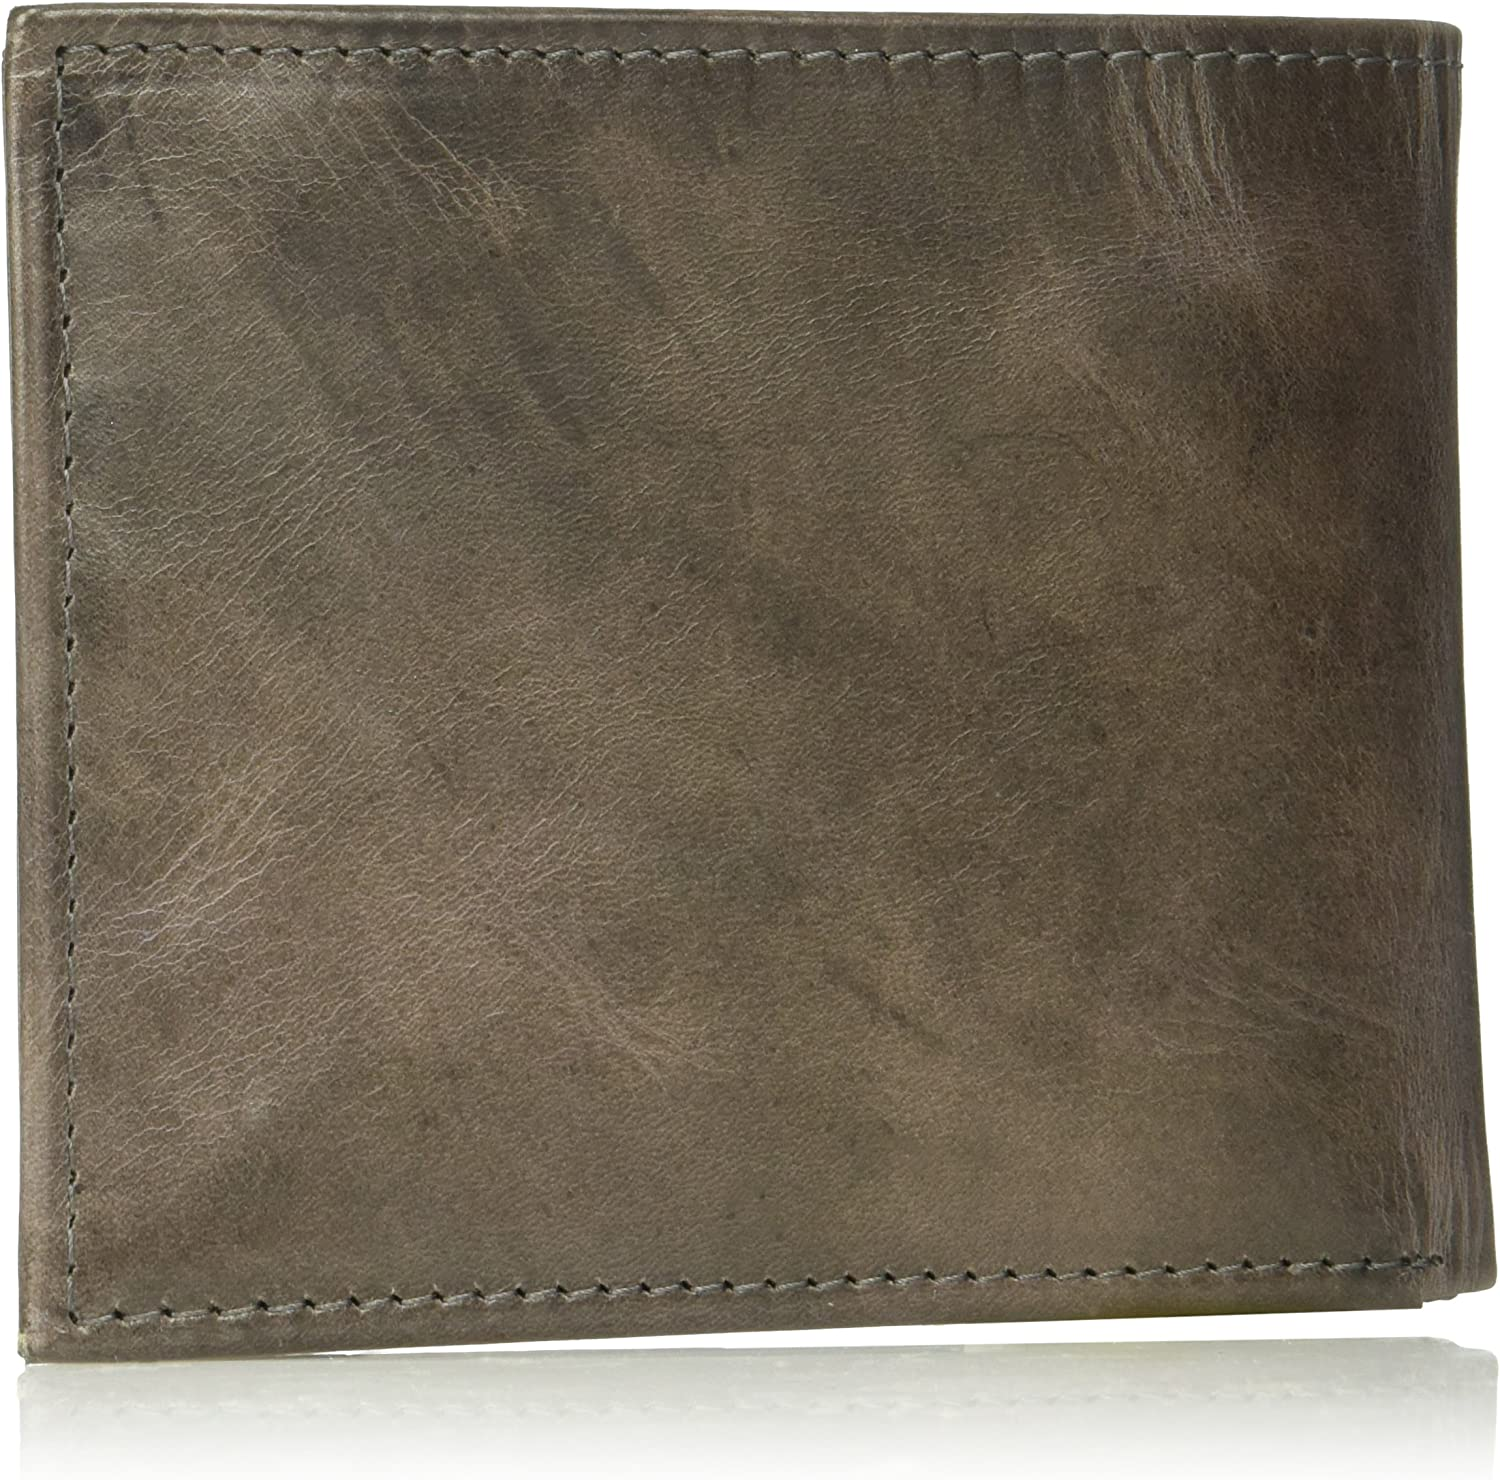 Kenneth Cole REACTION Men/'s RFID Blocking Security Slimfold Wallet